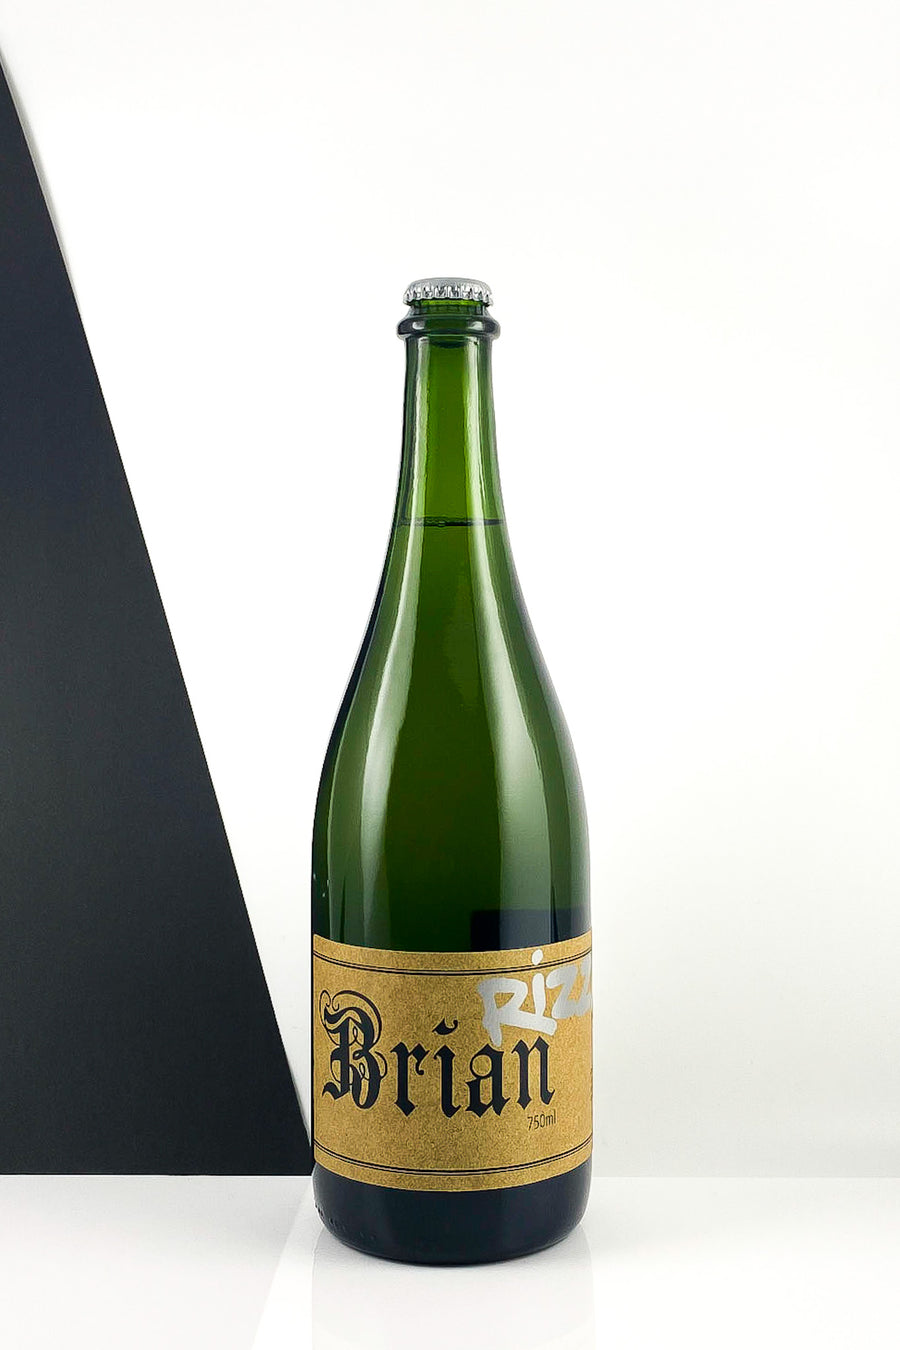 Brian Oregon Rizza 2018 750ml